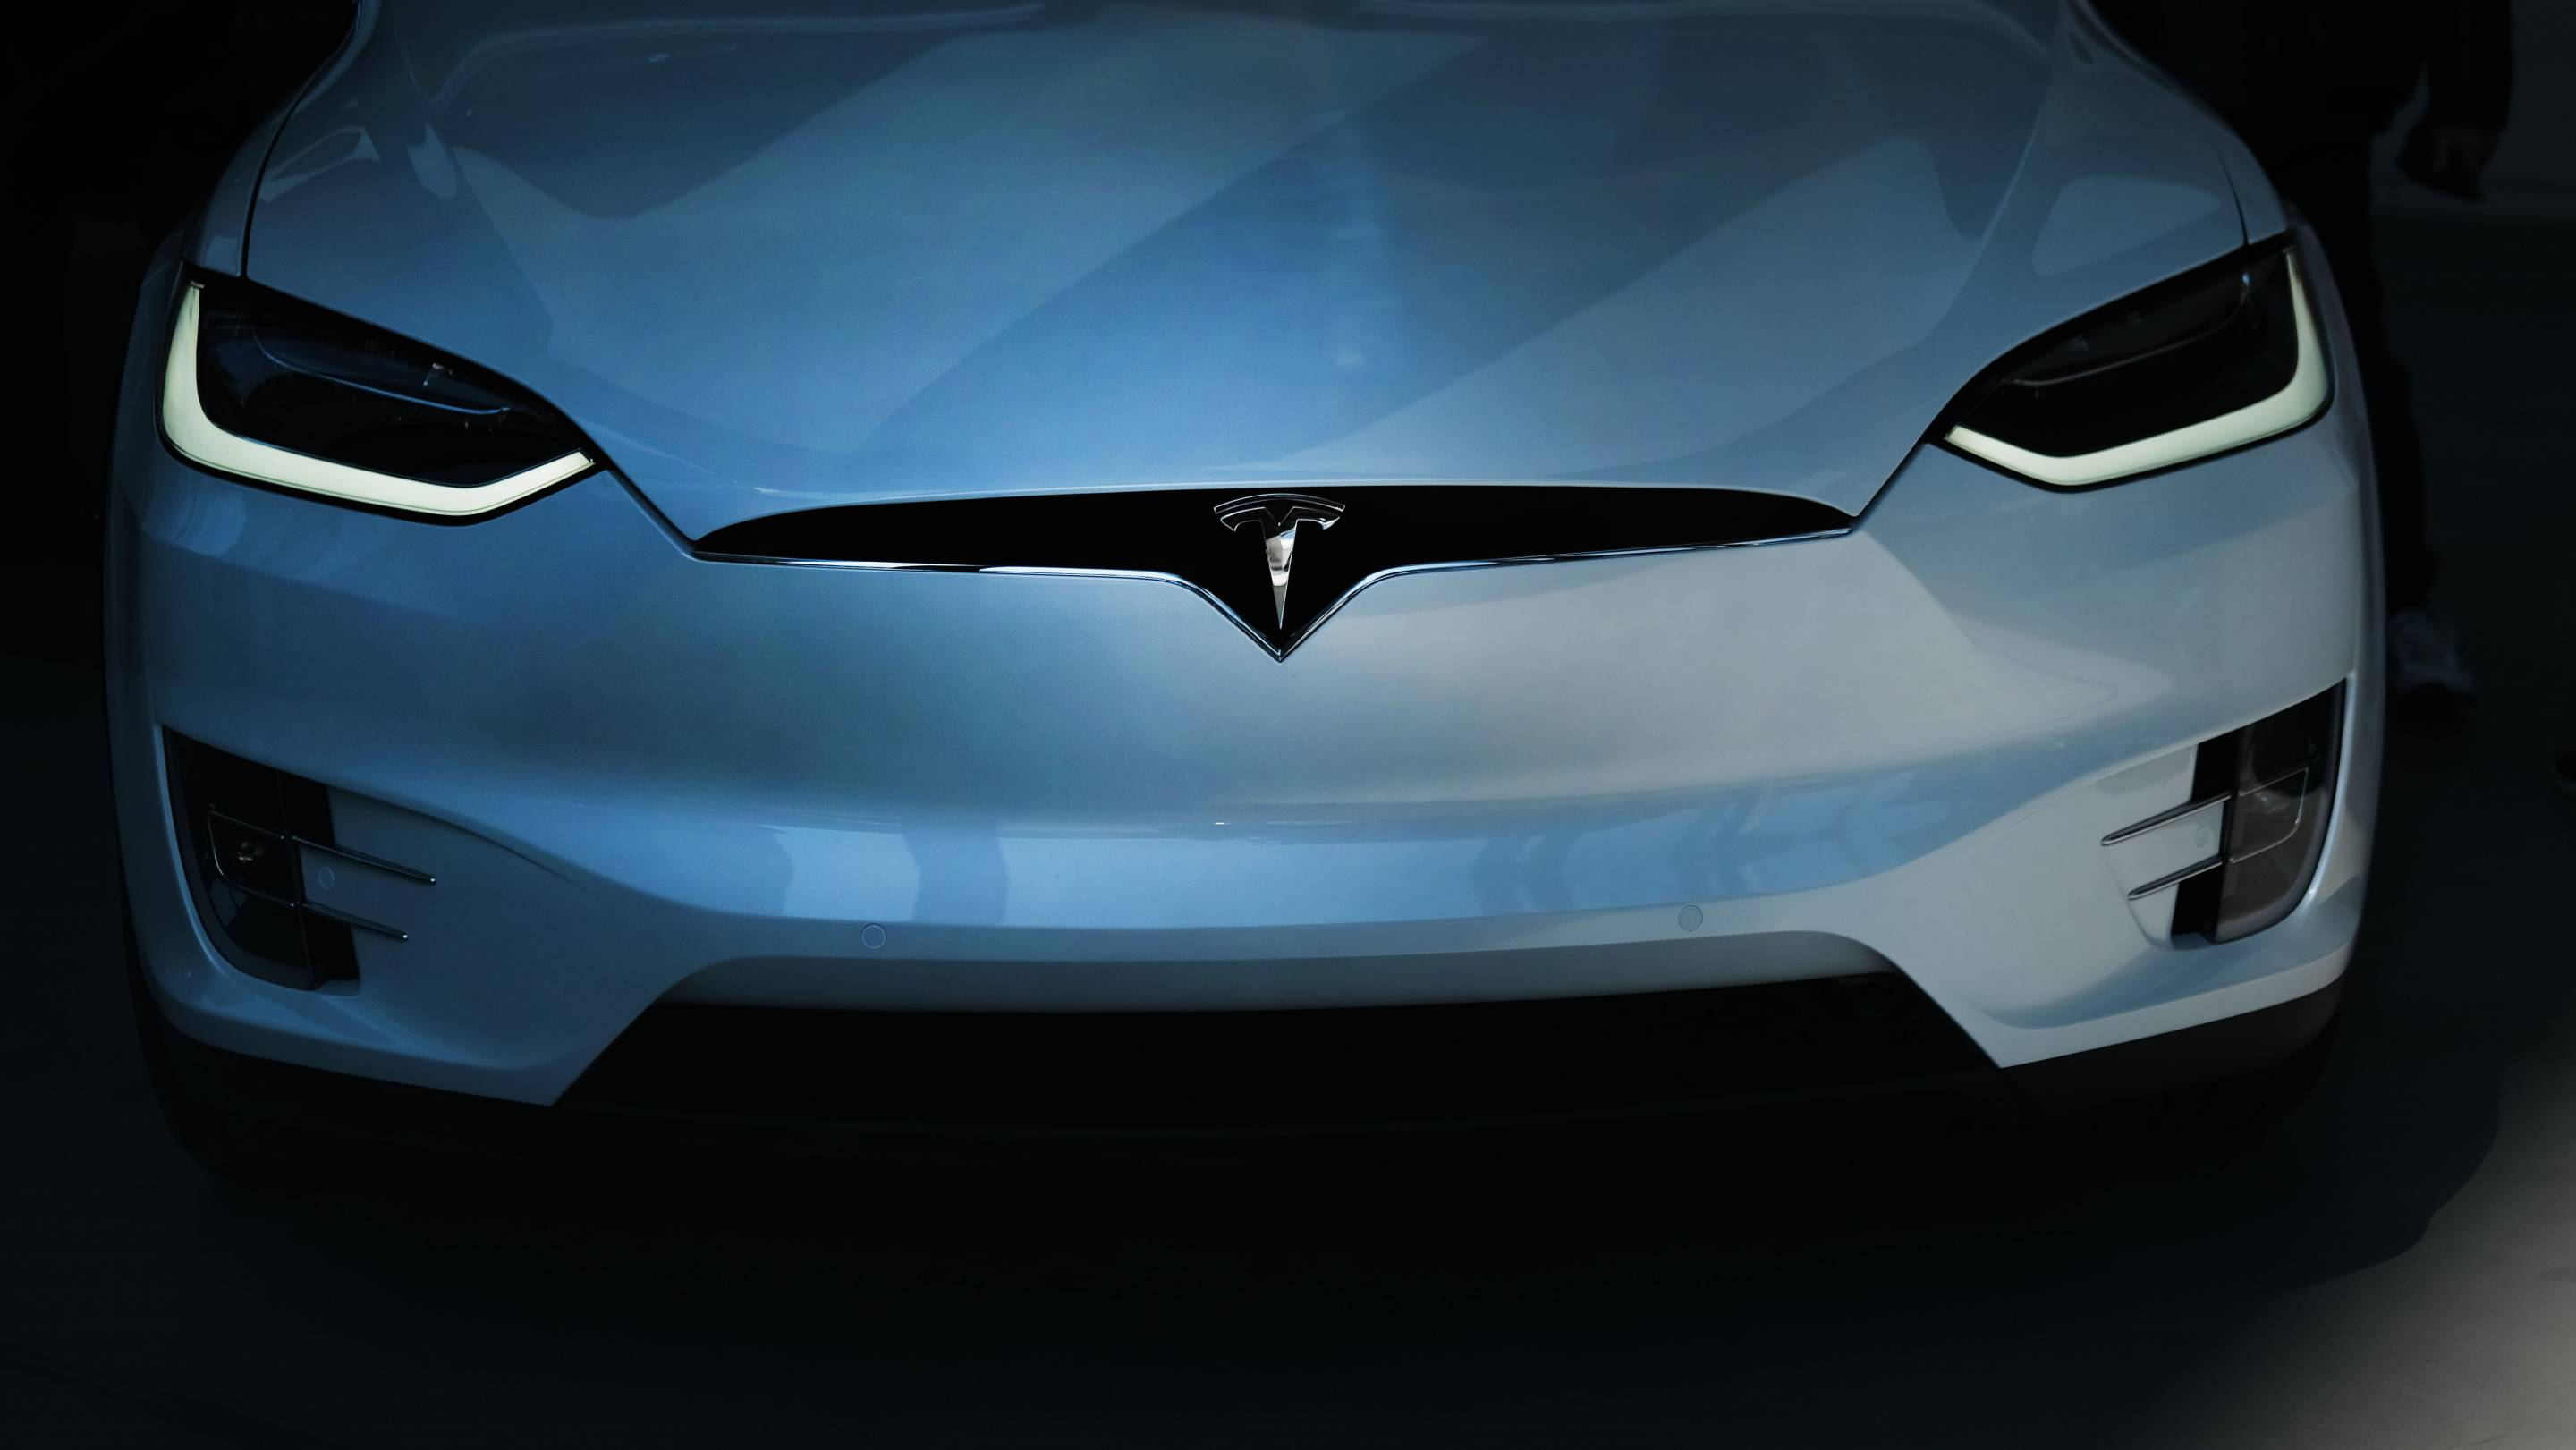 Tesla's New Vehicle Deliveries See Over 30% Decrease From Previous Quarter